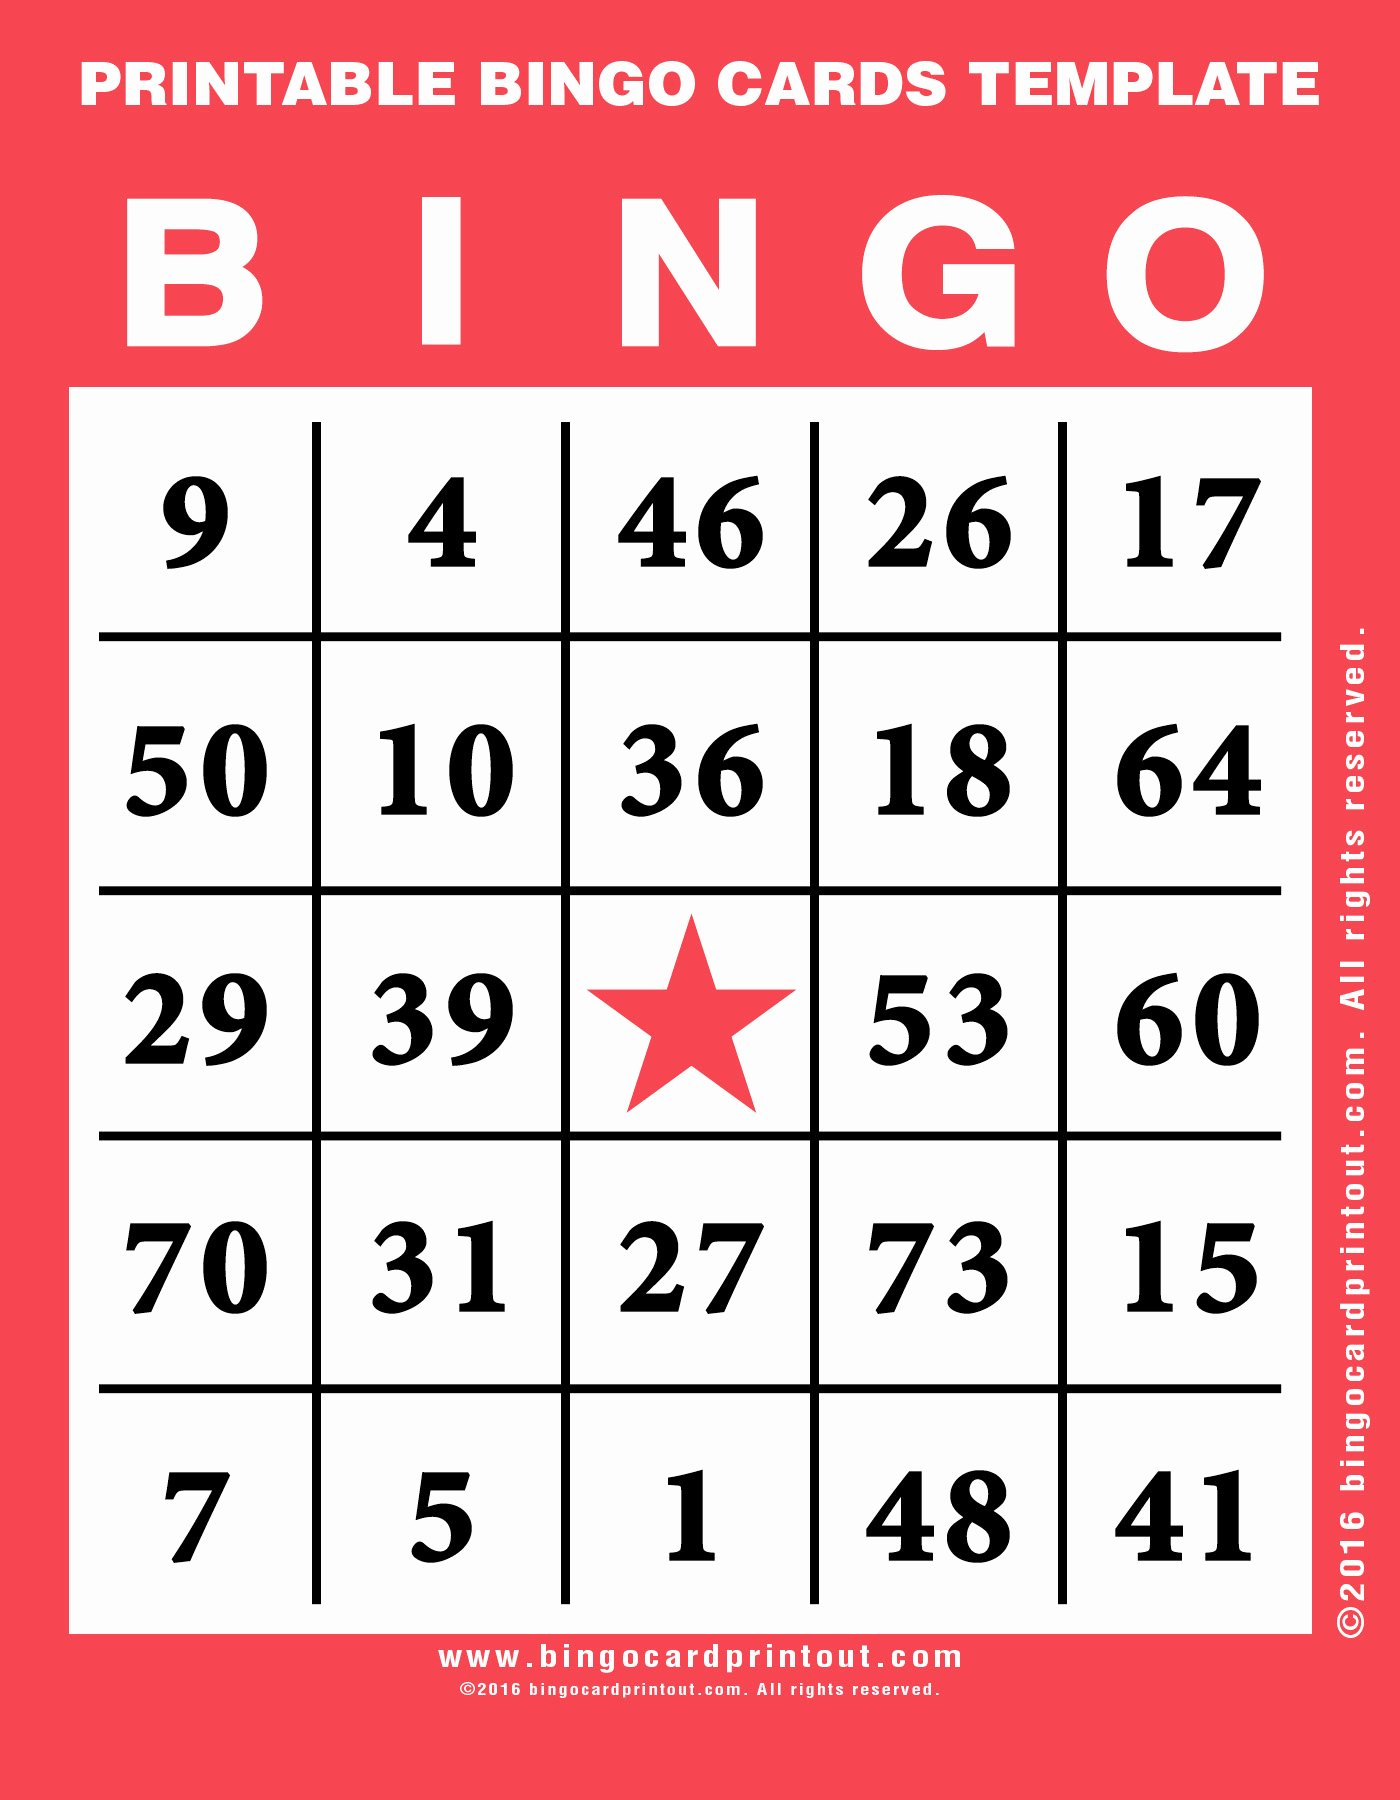 Printable Bingo Cards Template Bingocardprintout